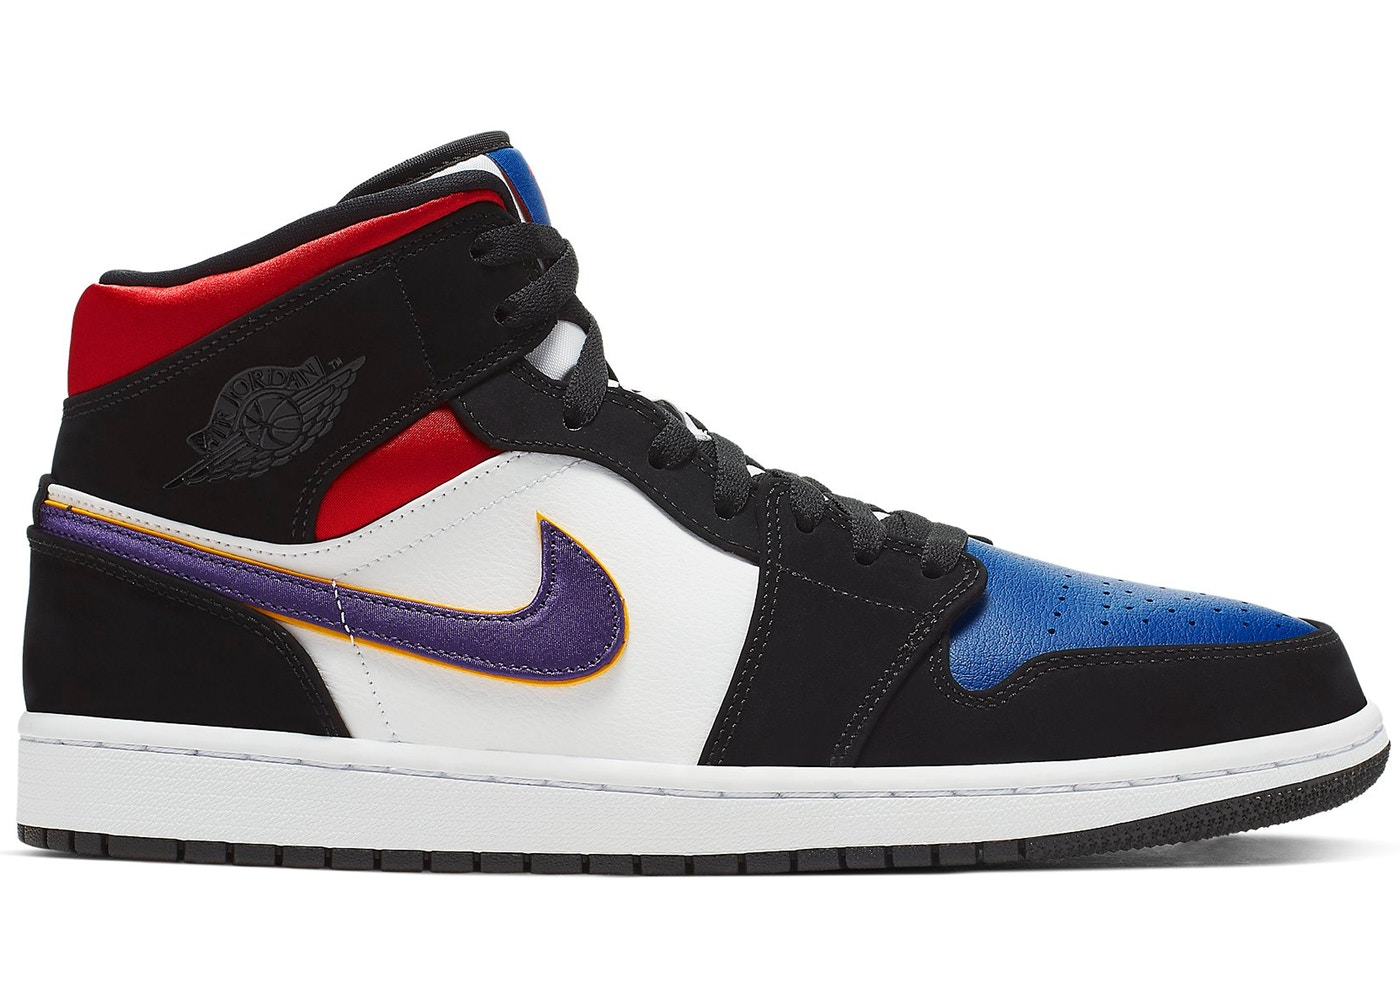 acb595f4388 Sell. or Ask. Size 9. View All Bids. Jordan 1 Mid Lakers ...